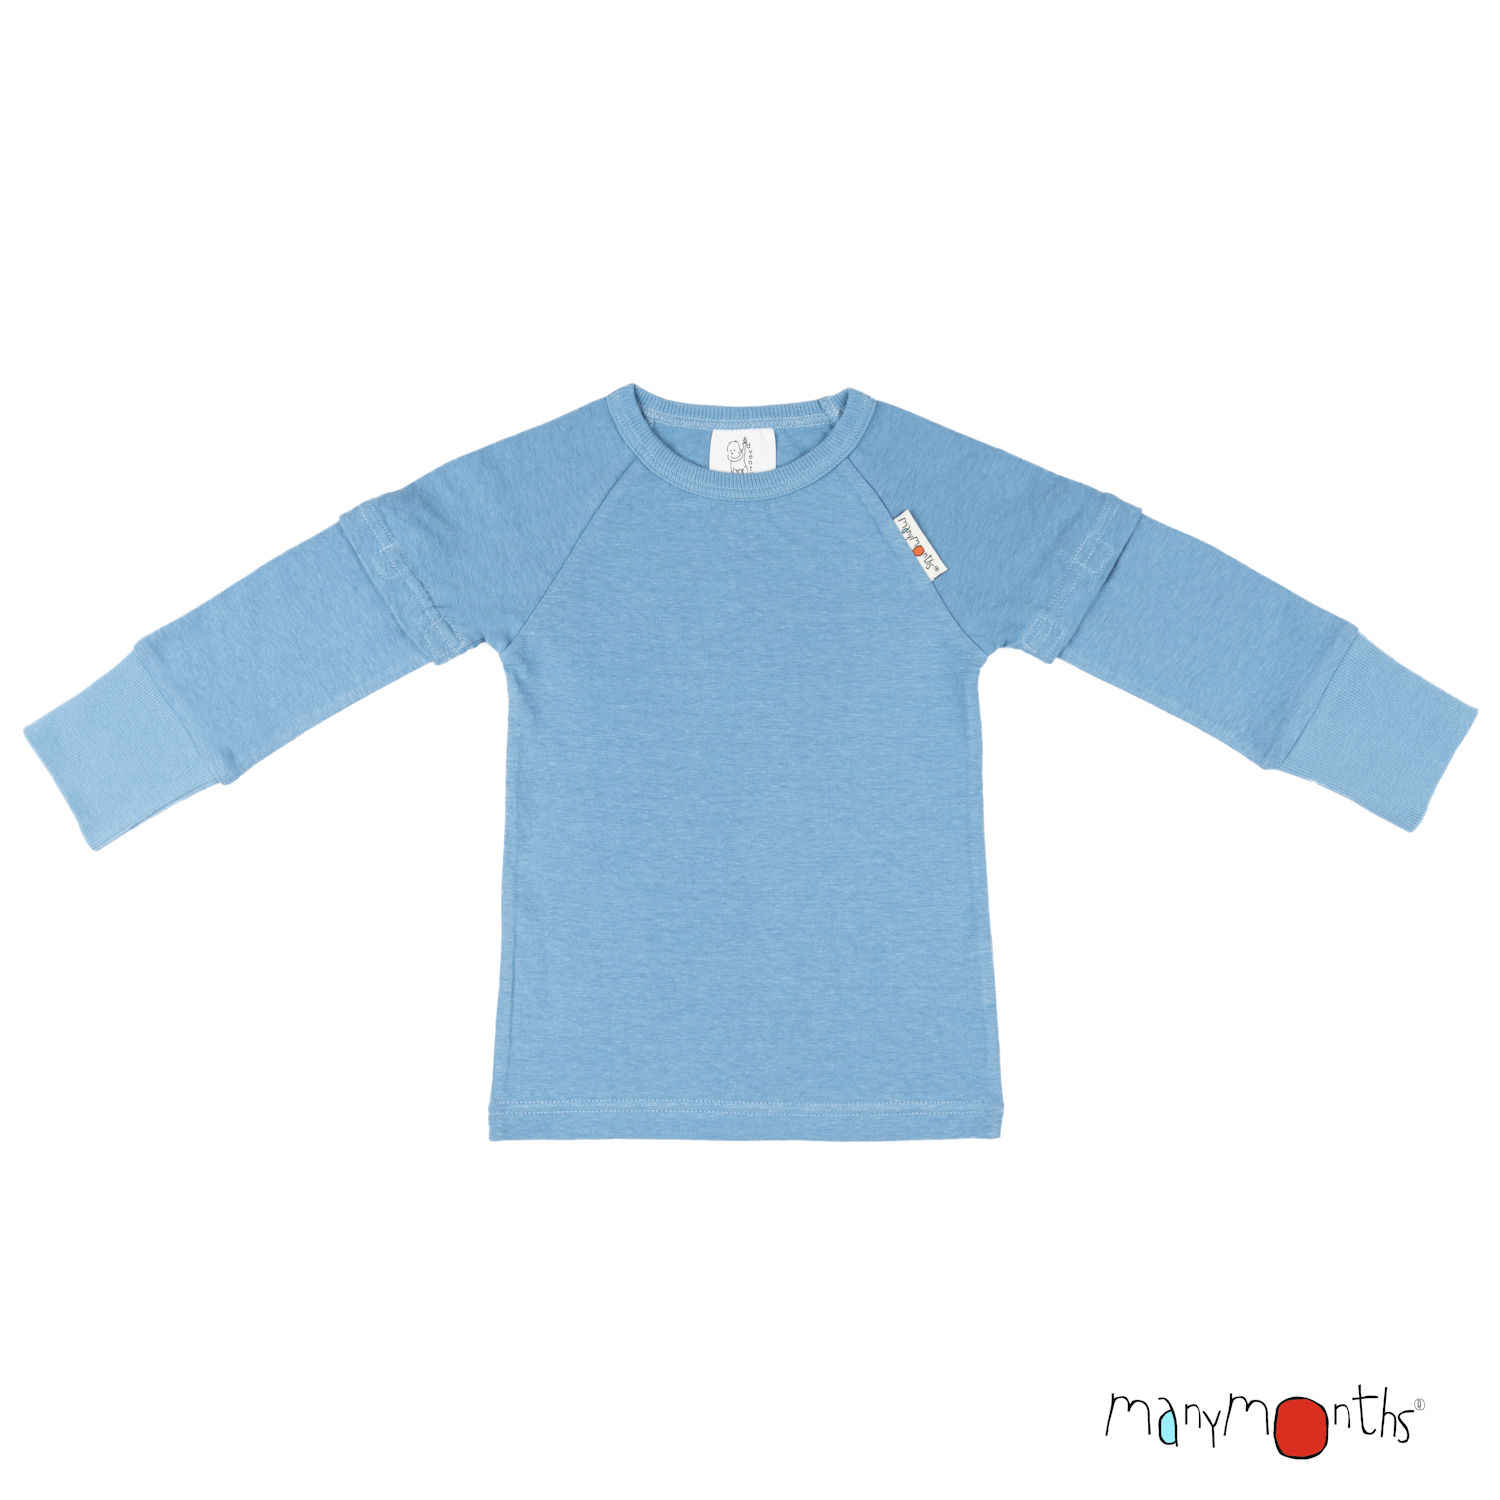 ManyMonths ECO Hempies Long/Short Sleeve Top